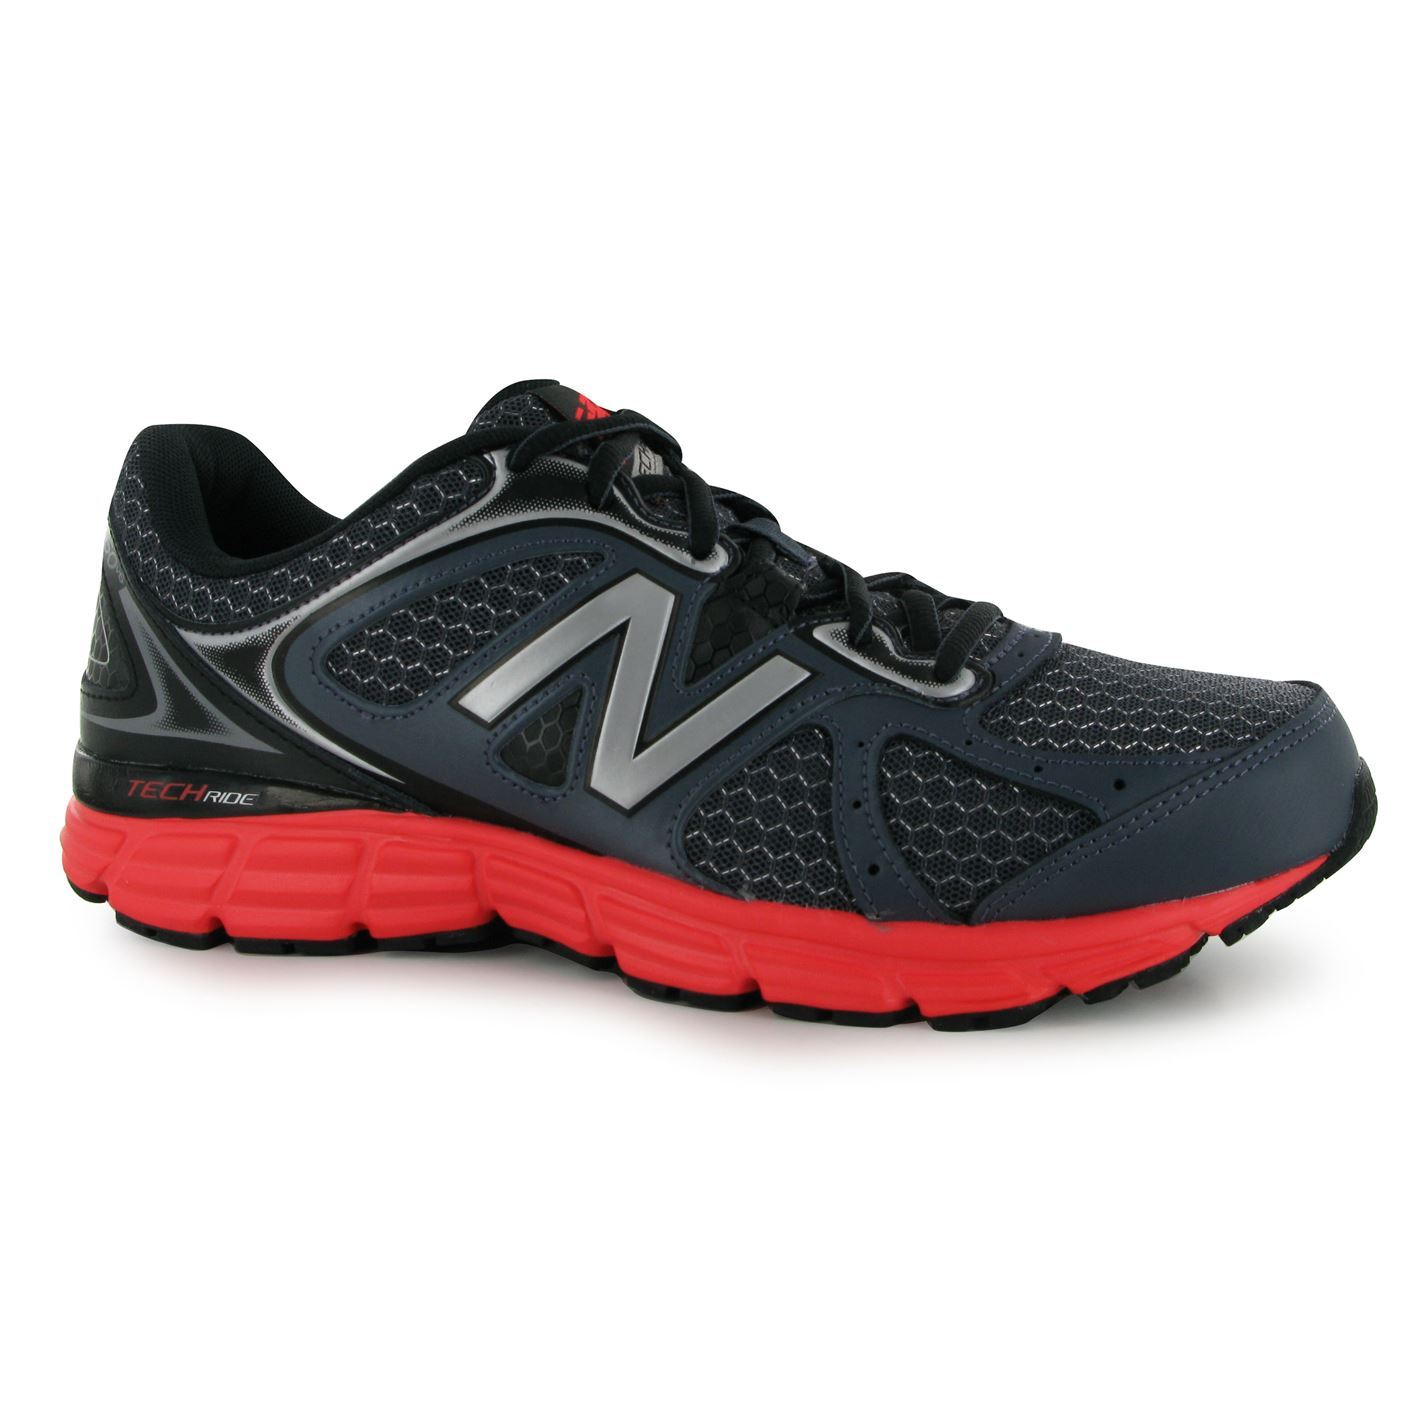 New Balance Mens M490 Running Shoes Trainers Sports